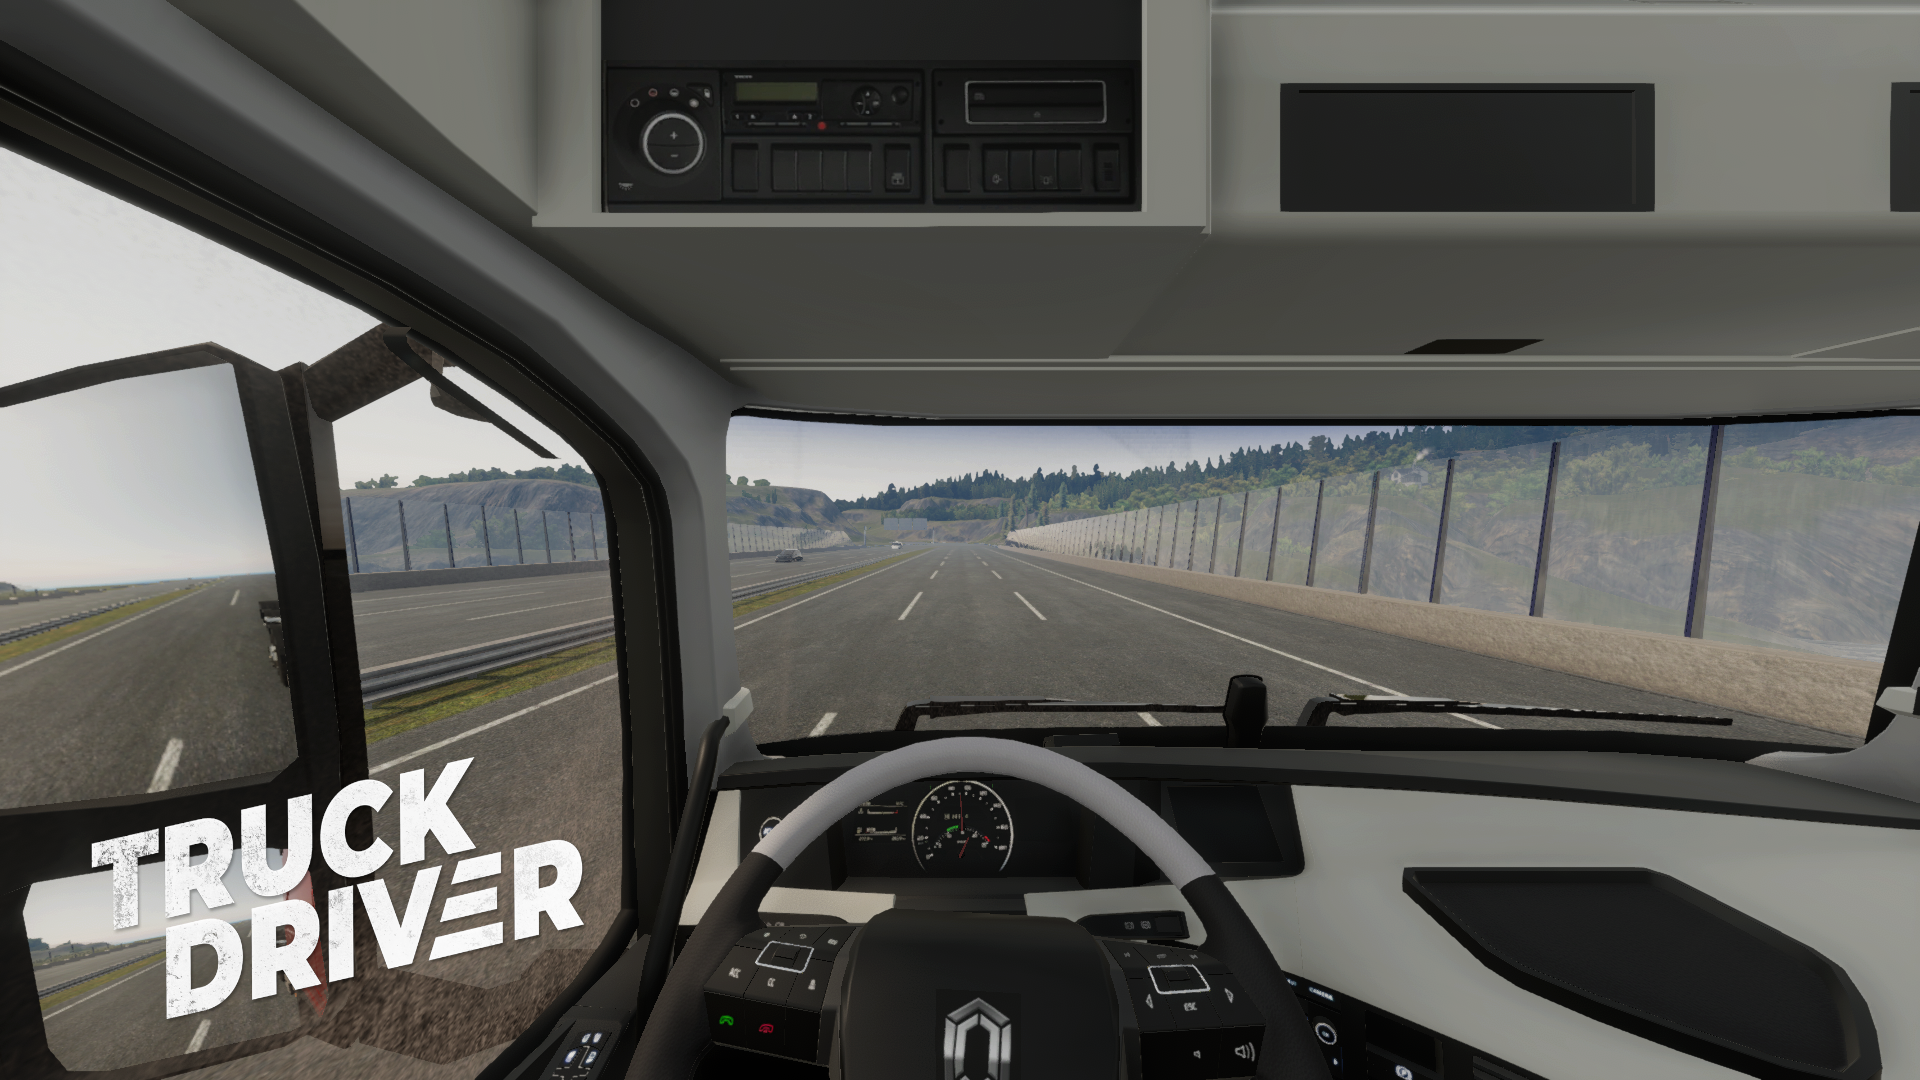 Truck Driver on Xbox One